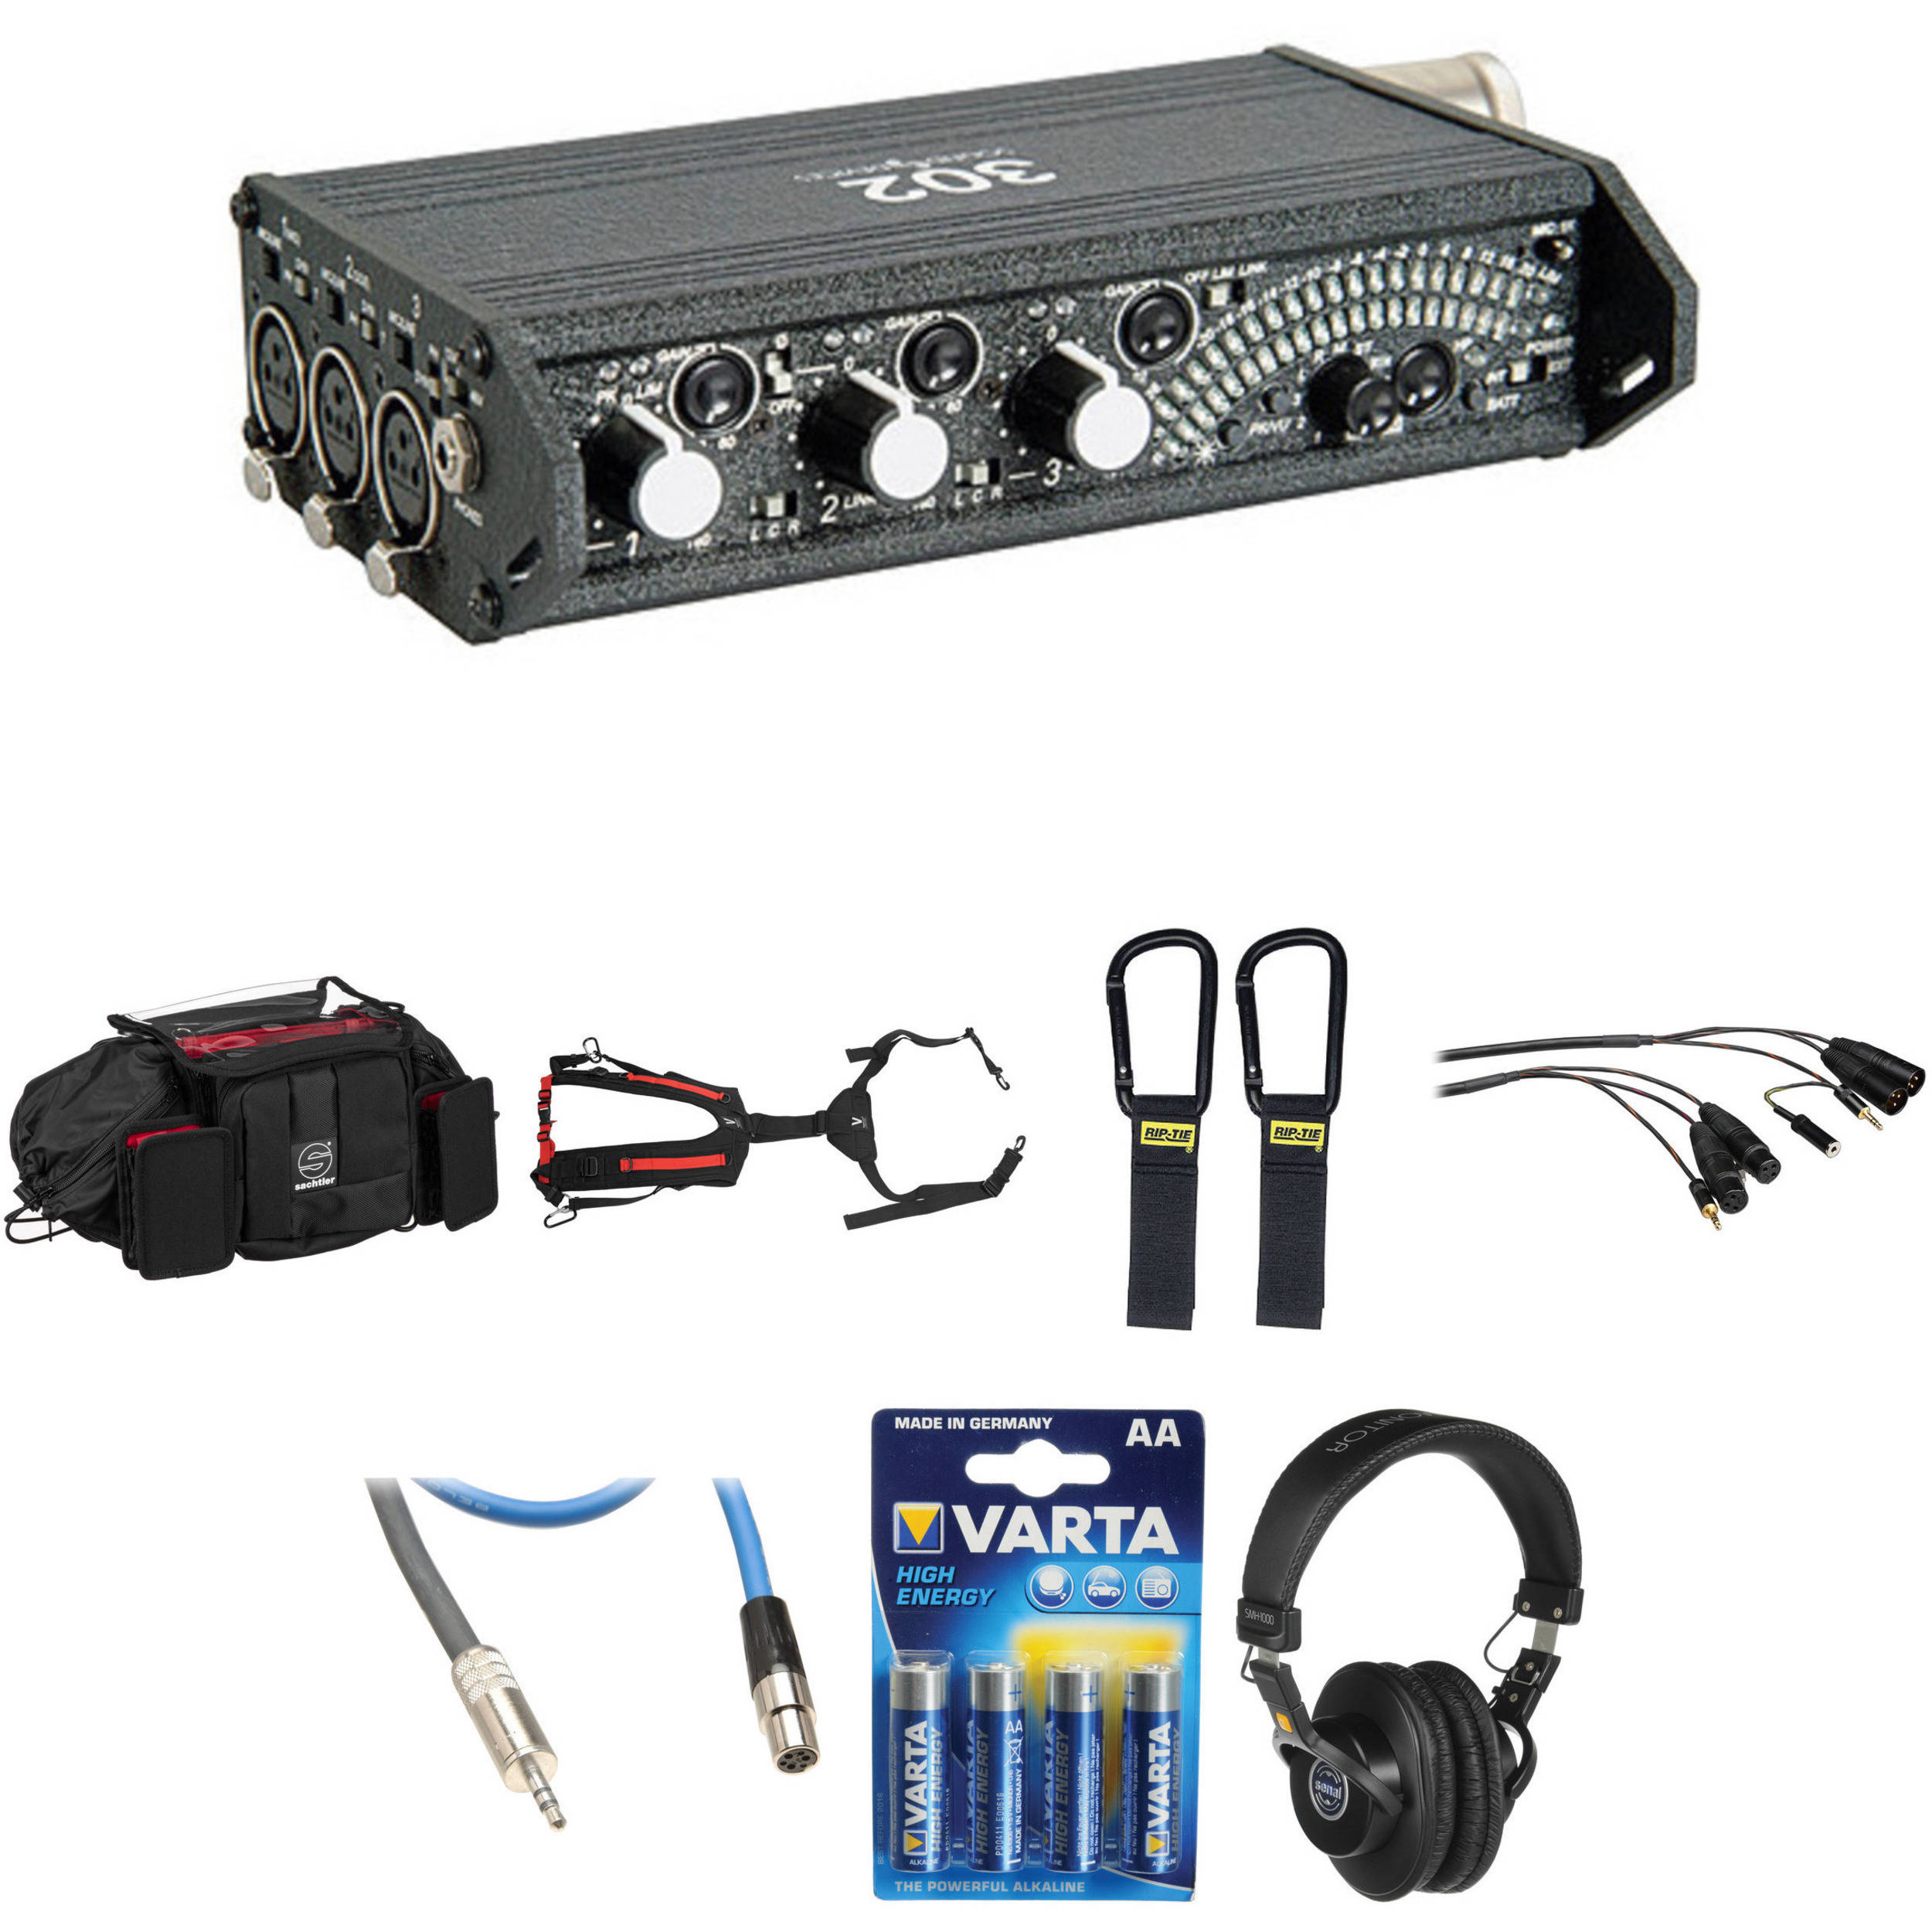 Sound Devices 302 Eng Efp Deluxe Field Mixer Kit Bh Photo Video Audio Signal Generator 1khz 22khz